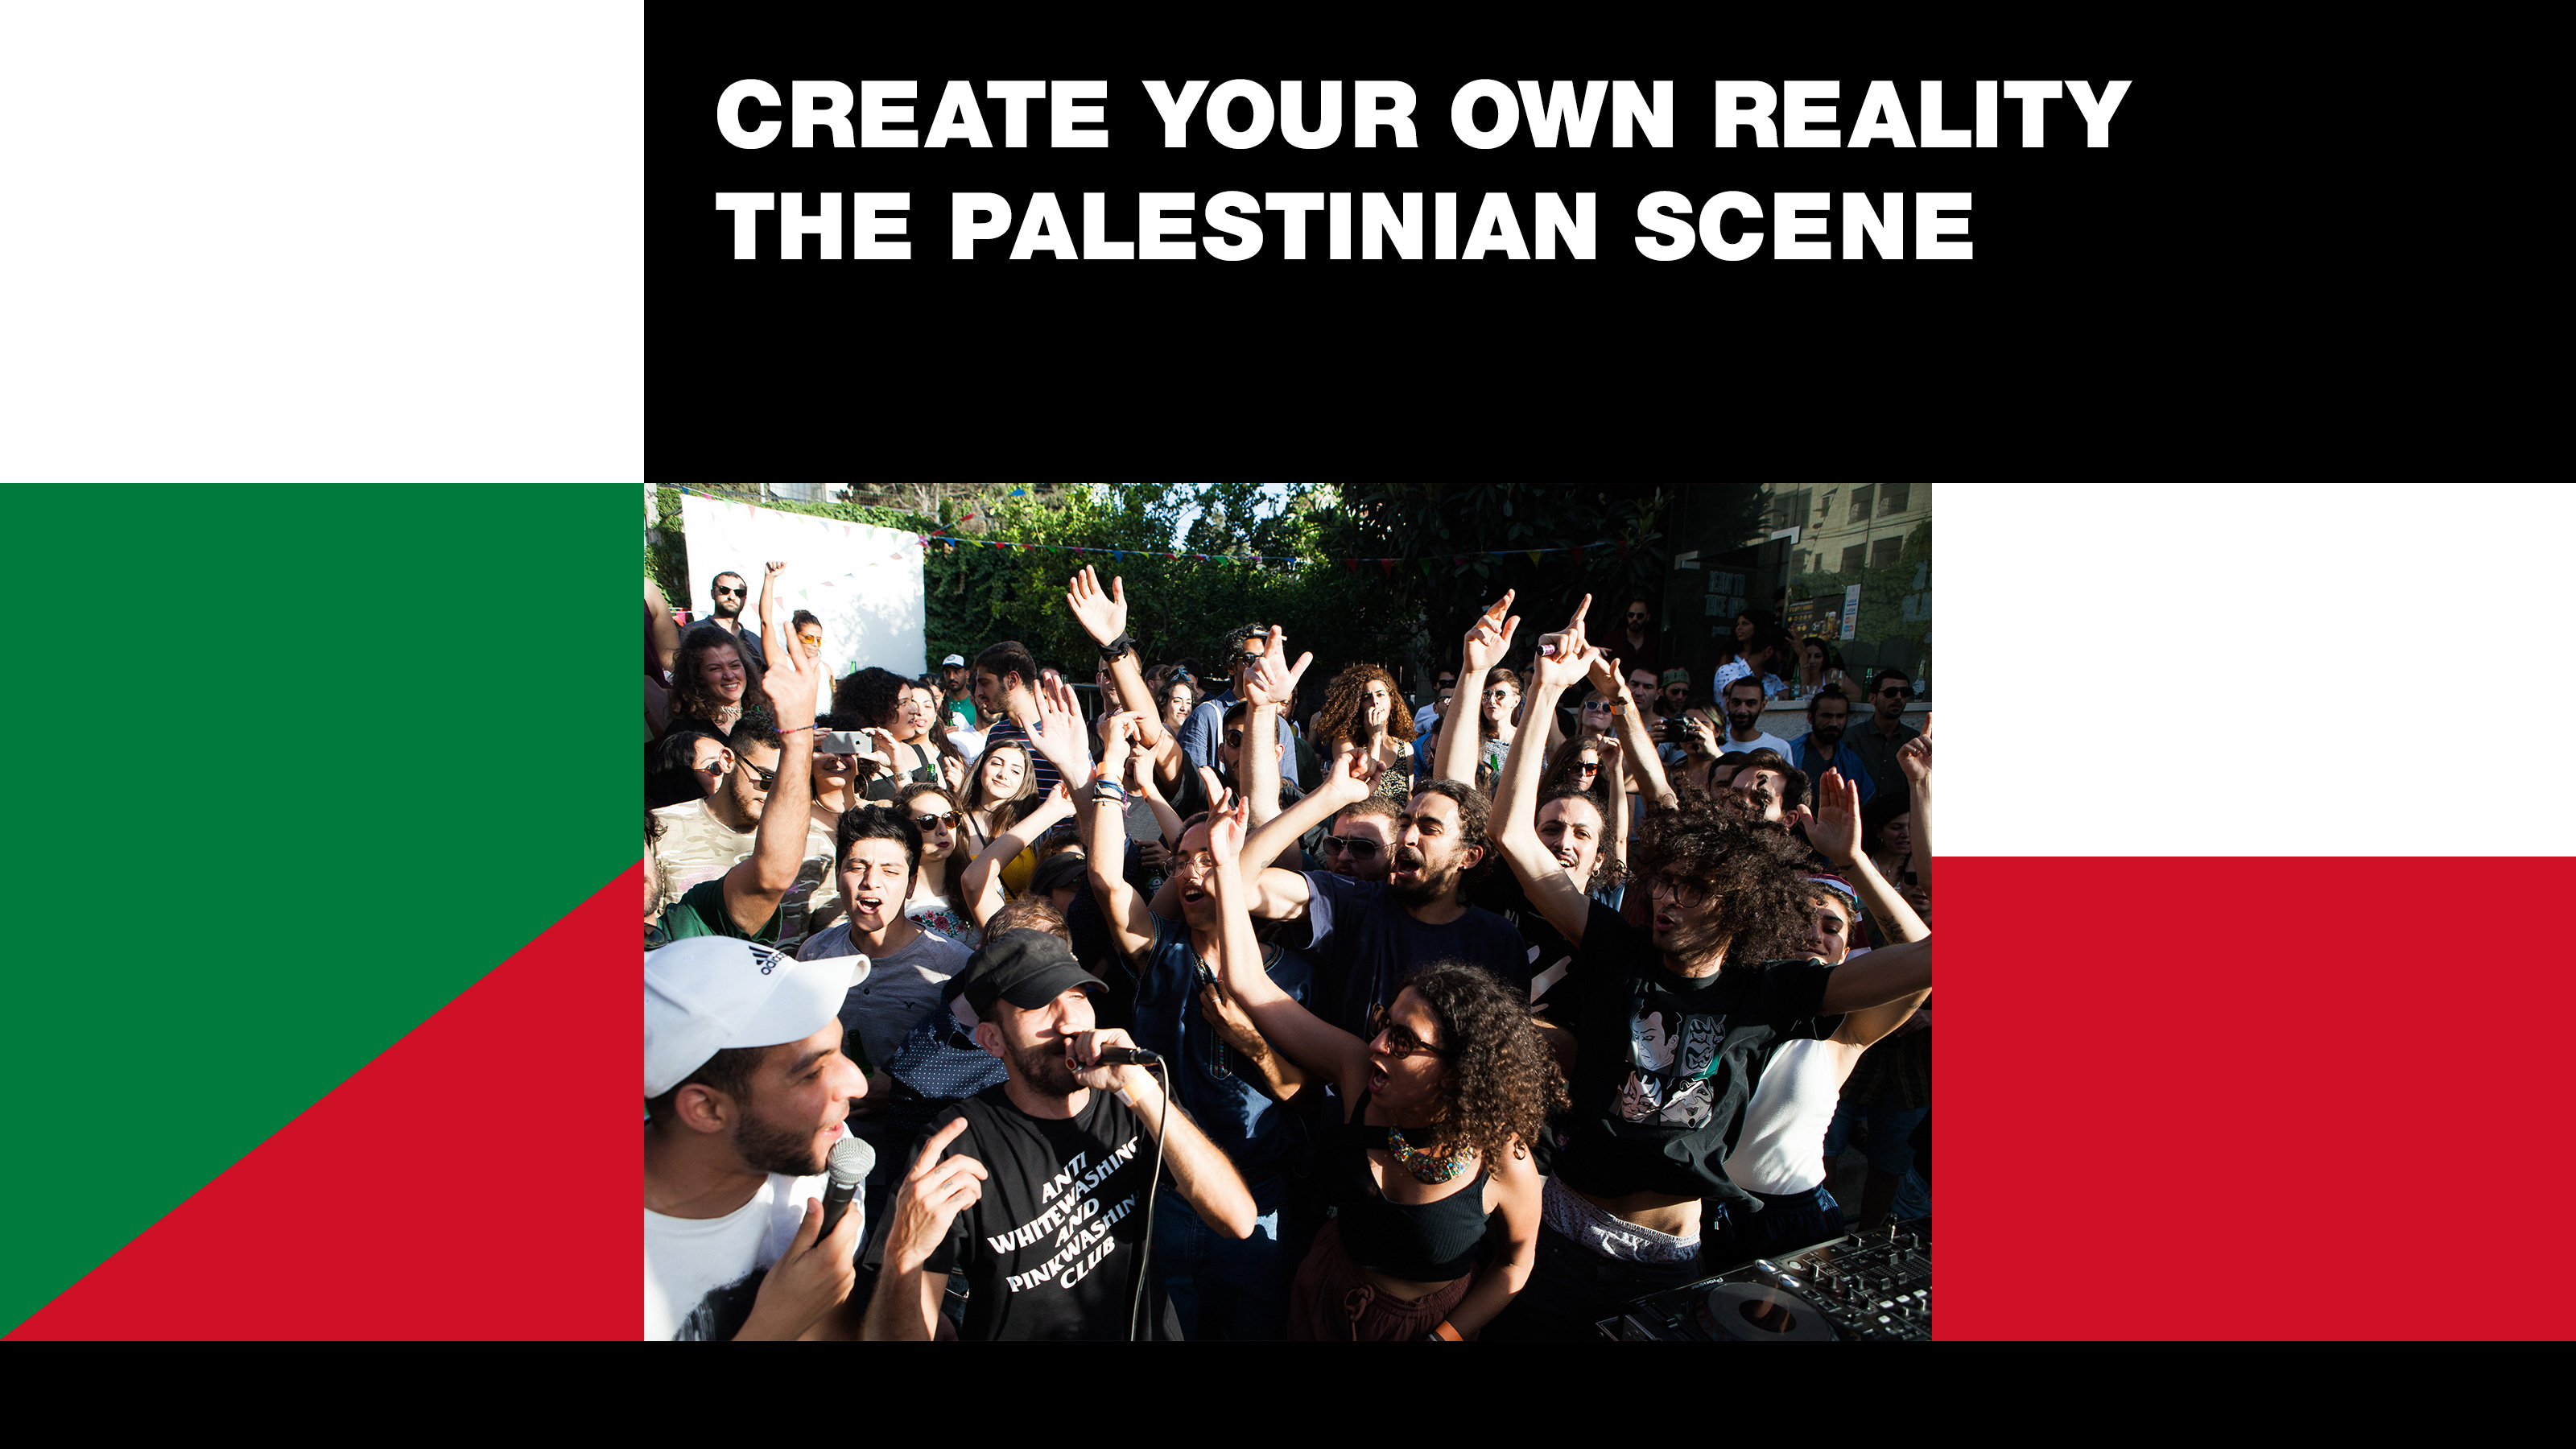 Create your own reality: The Palestinian scene